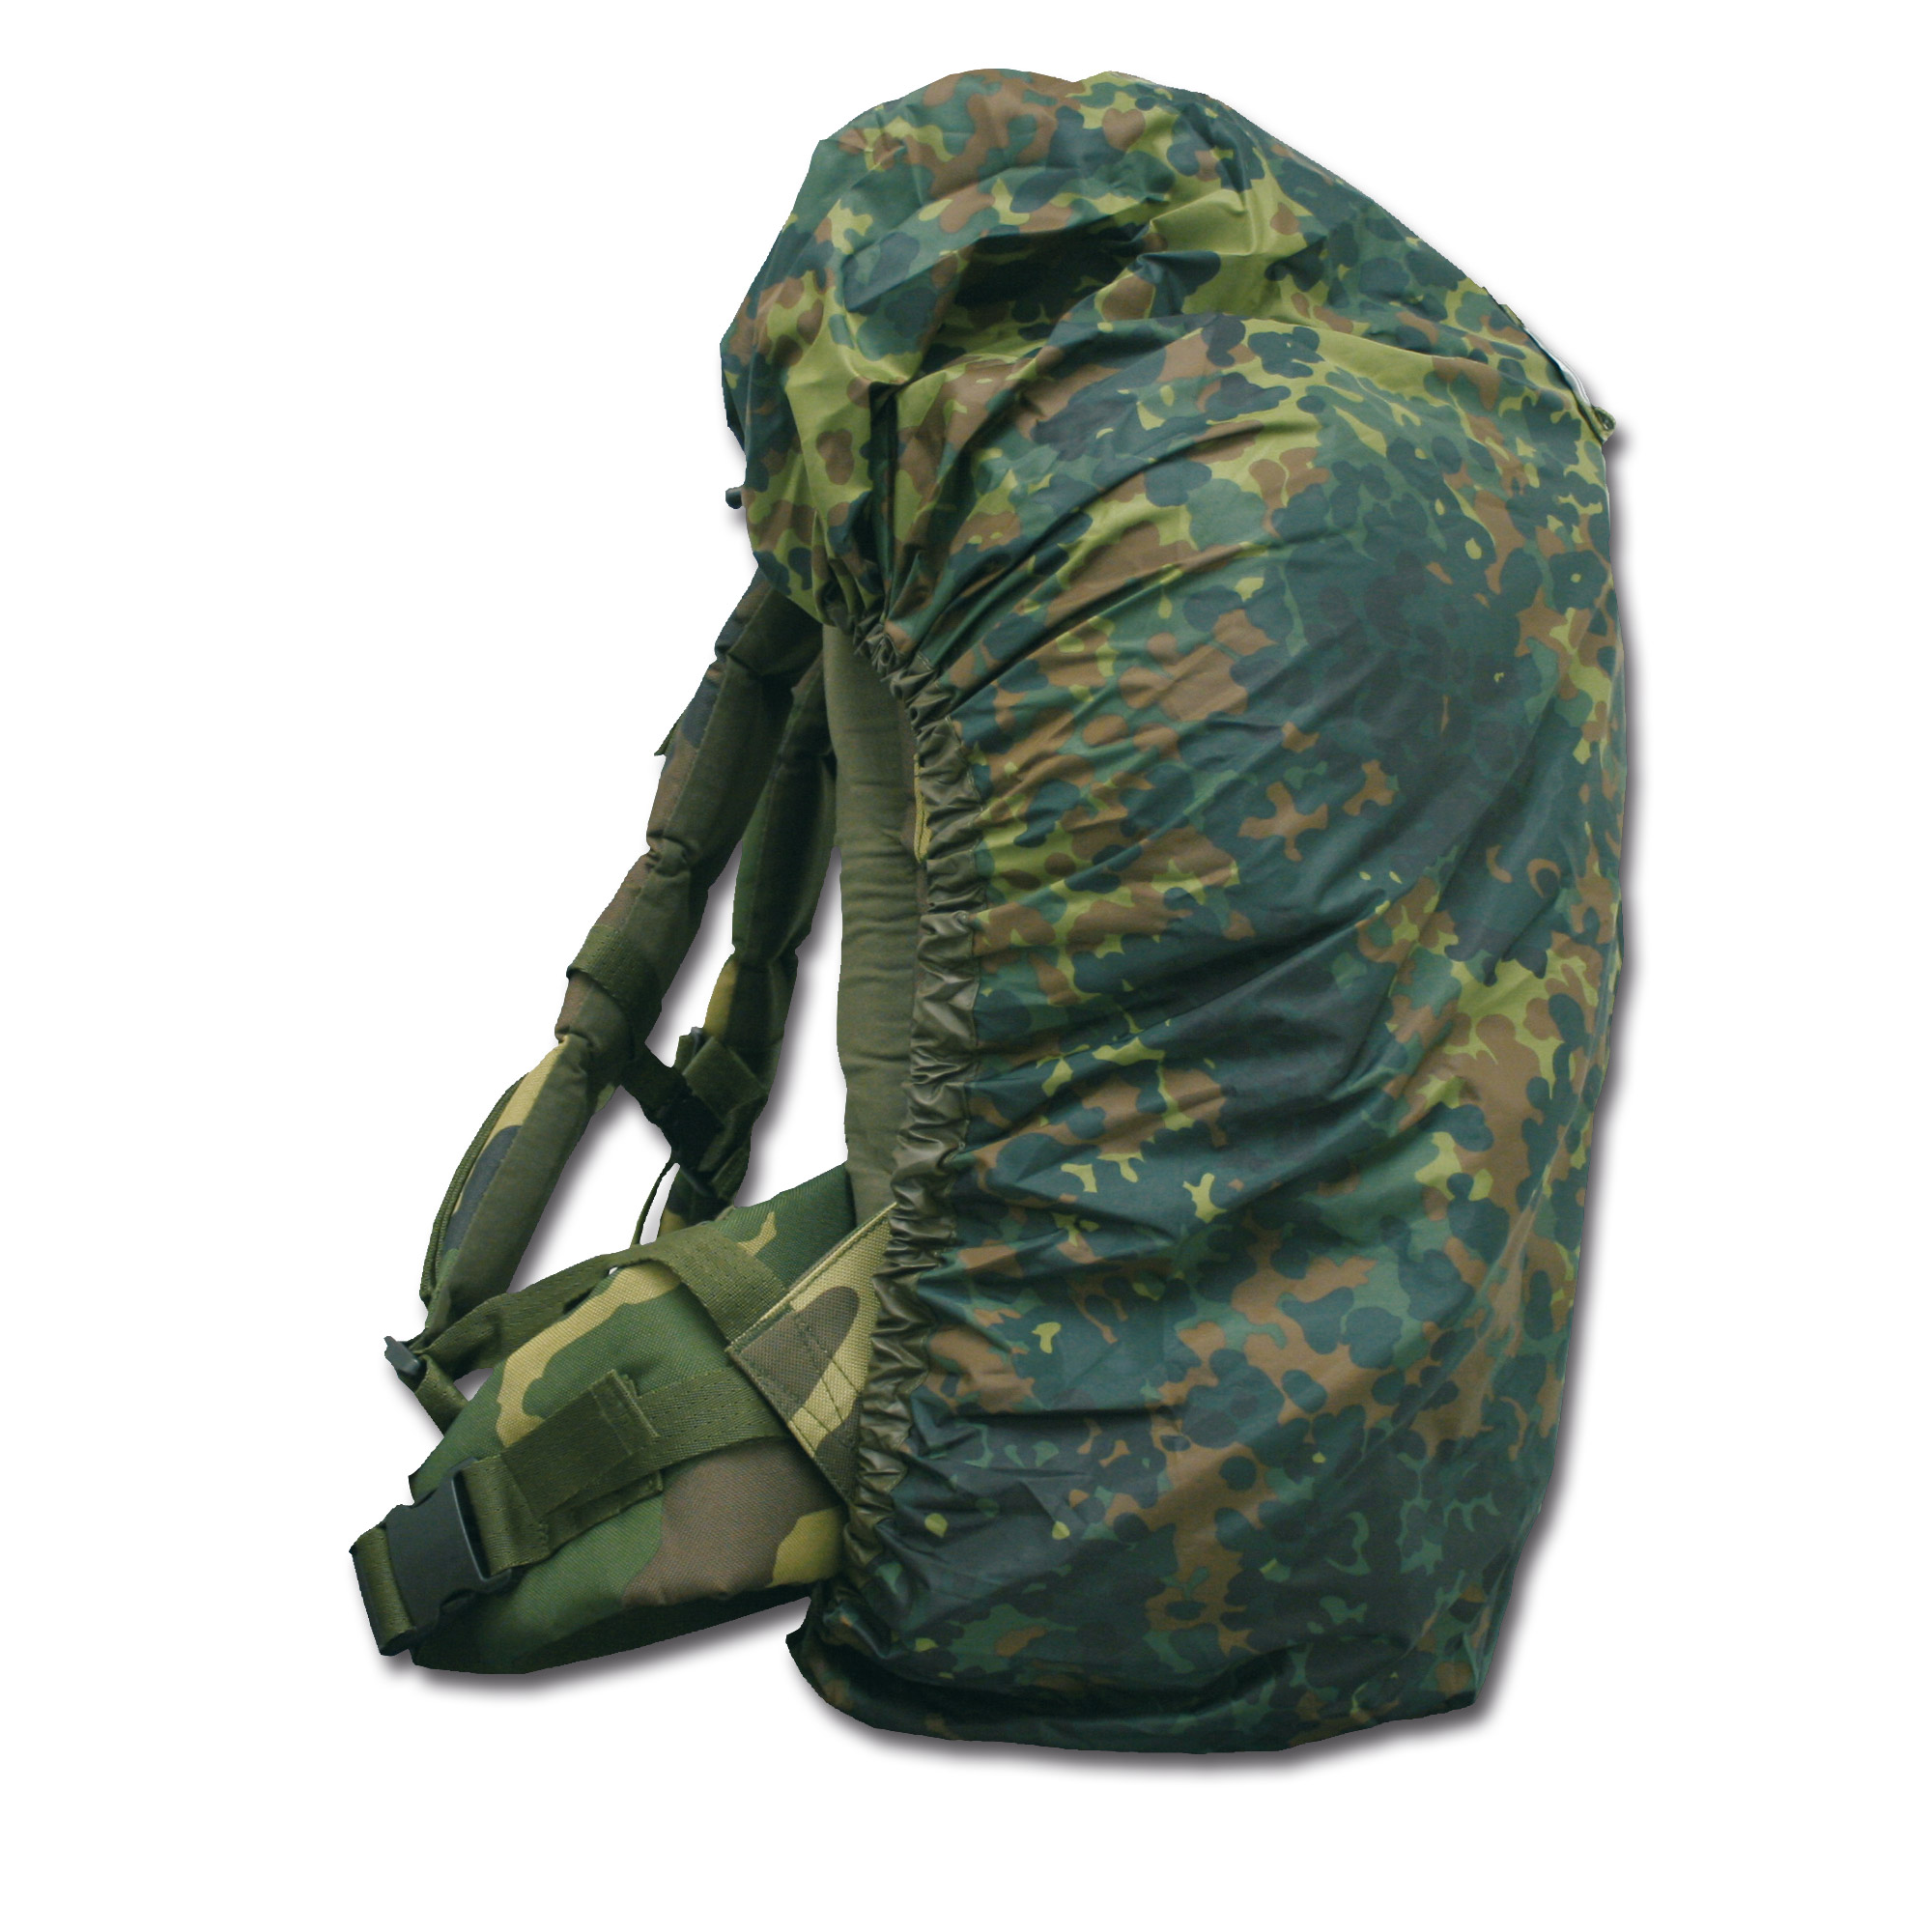 Backpack Raincover TT Large flecktarn